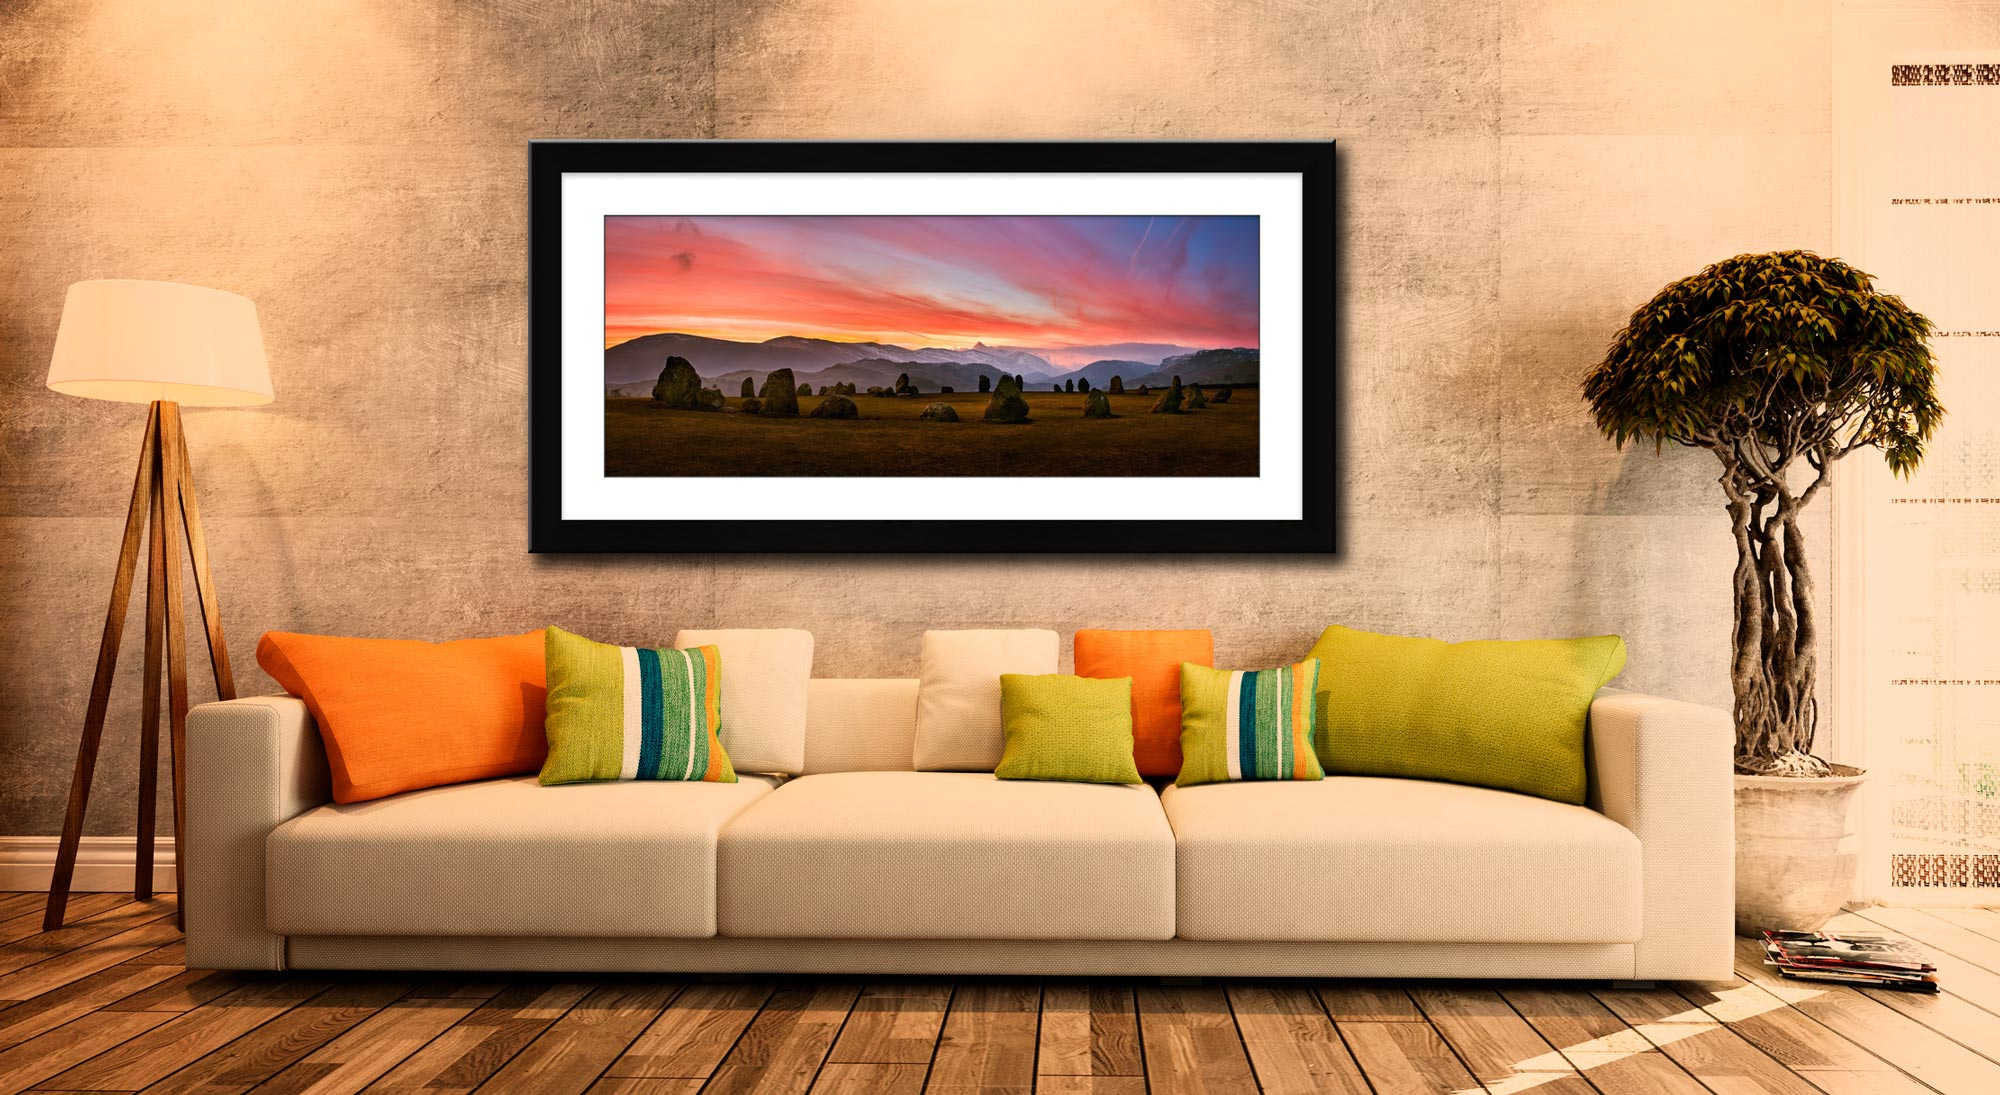 Dawn Skies Over Castlerigg - Framed Print with Mount on Wall